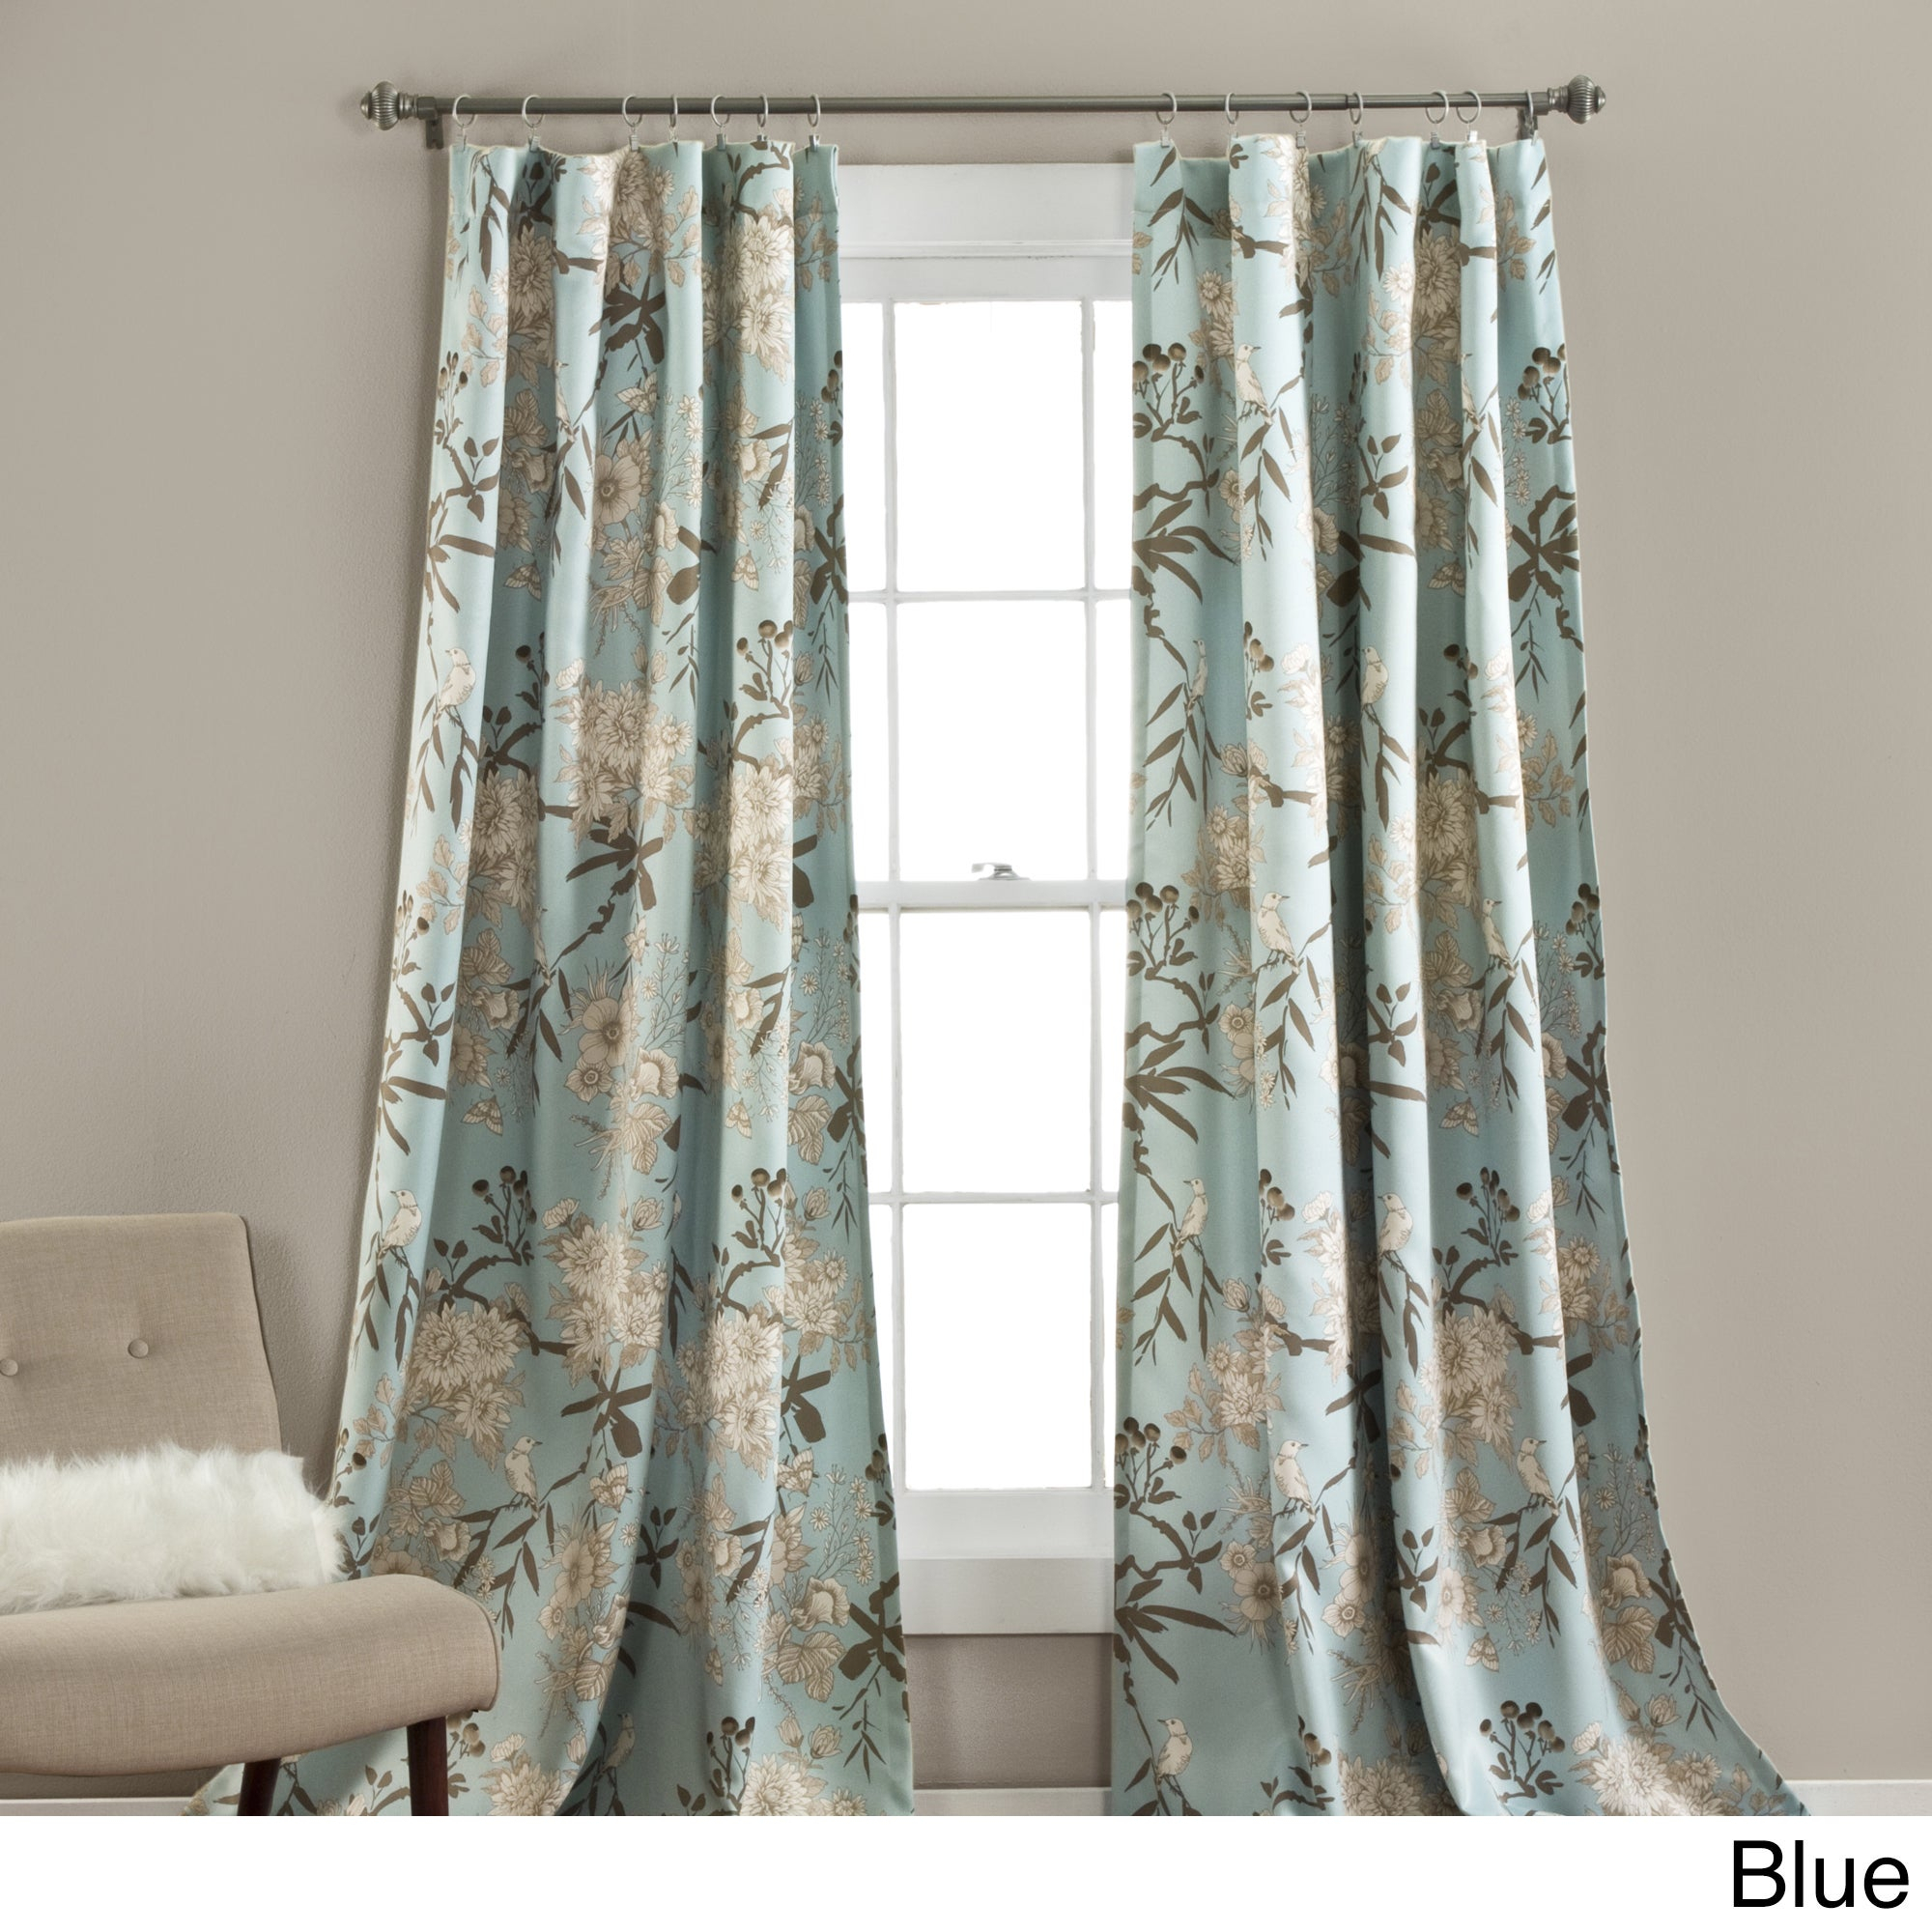 The Gray Barn Dogwood Floral Curtain Panel Pair Inside Gray Barn Dogwood Floral Curtain Panel Pairs (View 3 of 20)